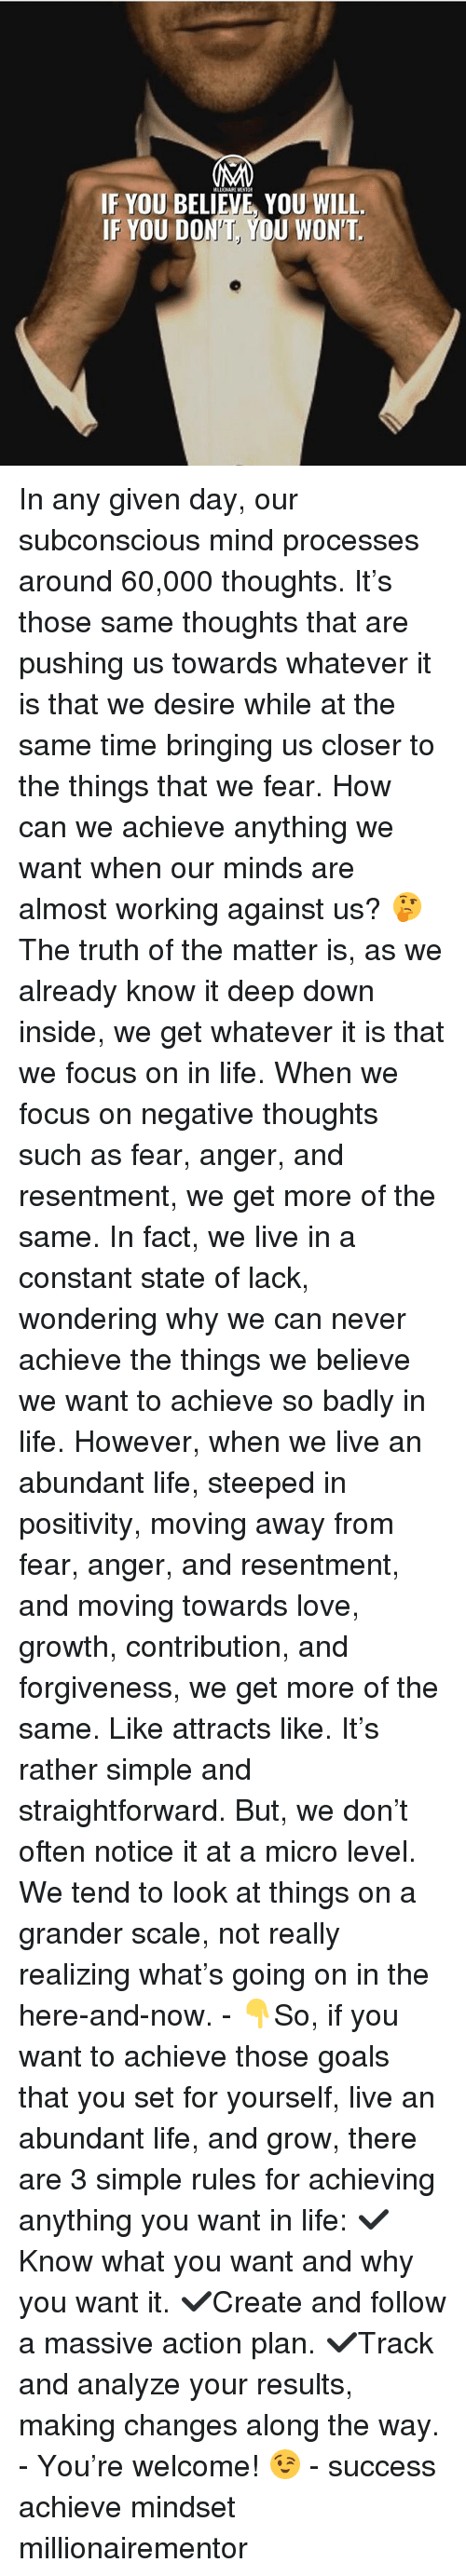 Goals, Life, and Love: IF YOU BELIEVE, YOU WILL.  IF YOU DON'T, YOU WON'T. In any given day, our subconscious mind processes around 60,000 thoughts. It's those same thoughts that are pushing us towards whatever it is that we desire while at the same time bringing us closer to the things that we fear. How can we achieve anything we want when our minds are almost working against us? 🤔 The truth of the matter is, as we already know it deep down inside, we get whatever it is that we focus on in life. When we focus on negative thoughts such as fear, anger, and resentment, we get more of the same. In fact, we live in a constant state of lack, wondering why we can never achieve the things we believe we want to achieve so badly in life. However, when we live an abundant life, steeped in positivity, moving away from fear, anger, and resentment, and moving towards love, growth, contribution, and forgiveness, we get more of the same. Like attracts like. It's rather simple and straightforward. But, we don't often notice it at a micro level. We tend to look at things on a grander scale, not really realizing what's going on in the here-and-now. - 👇So, if you want to achieve those goals that you set for yourself, live an abundant life, and grow, there are 3 simple rules for achieving anything you want in life: ✔️Know what you want and why you want it. ✔️Create and follow a massive action plan. ✔️Track and analyze your results, making changes along the way. - You're welcome! 😉 - success achieve mindset millionairementor